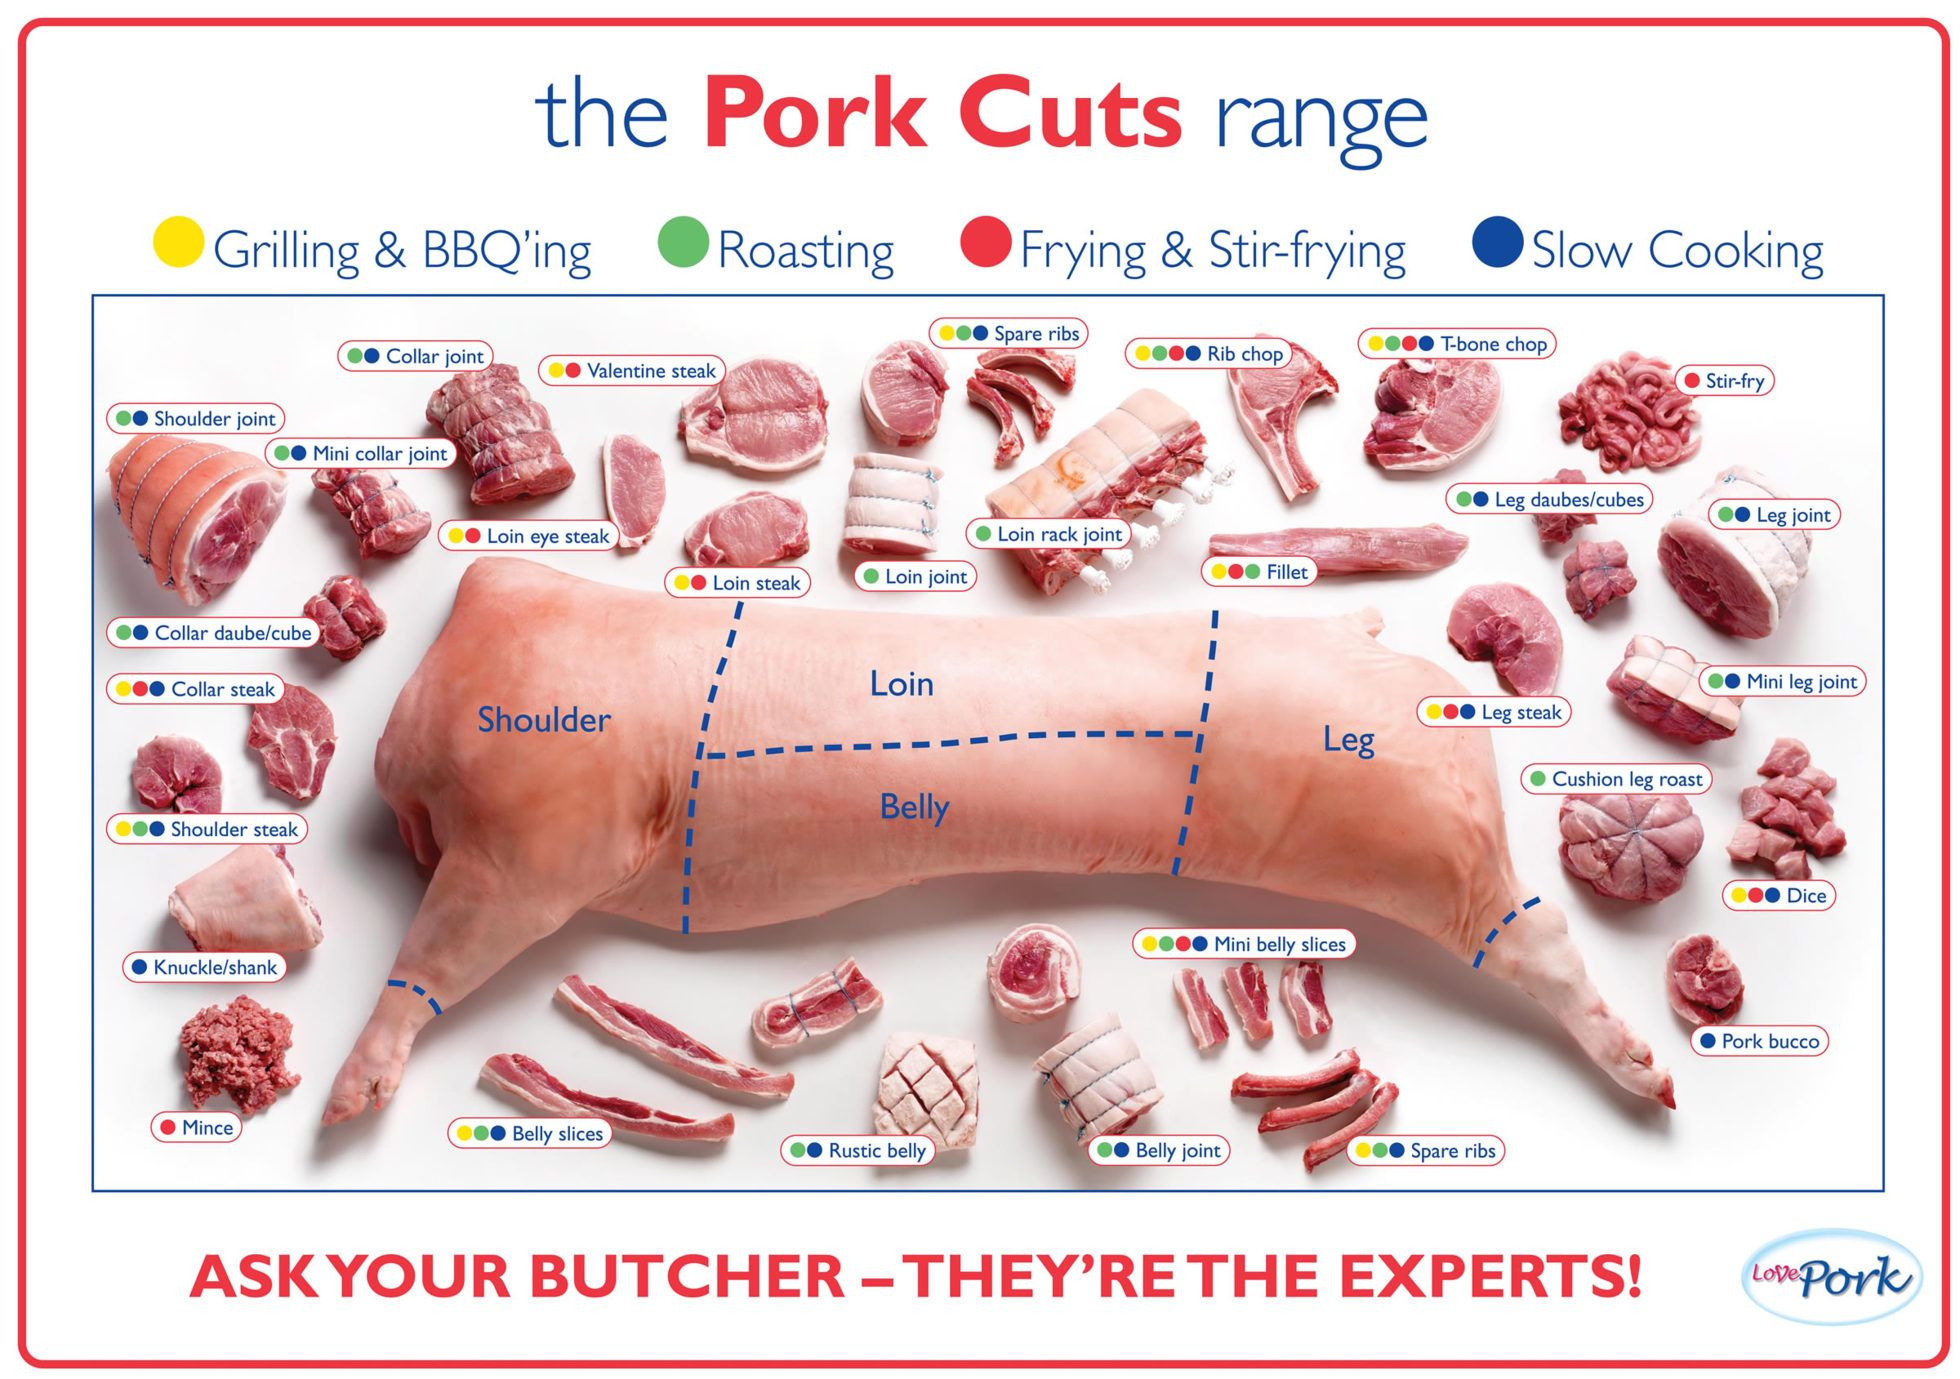 hight resolution of whats in half a pig share 23 pork chops 2 roasts 1 ham 8 lbs of spare ribs pig diagram spare ribs diagram